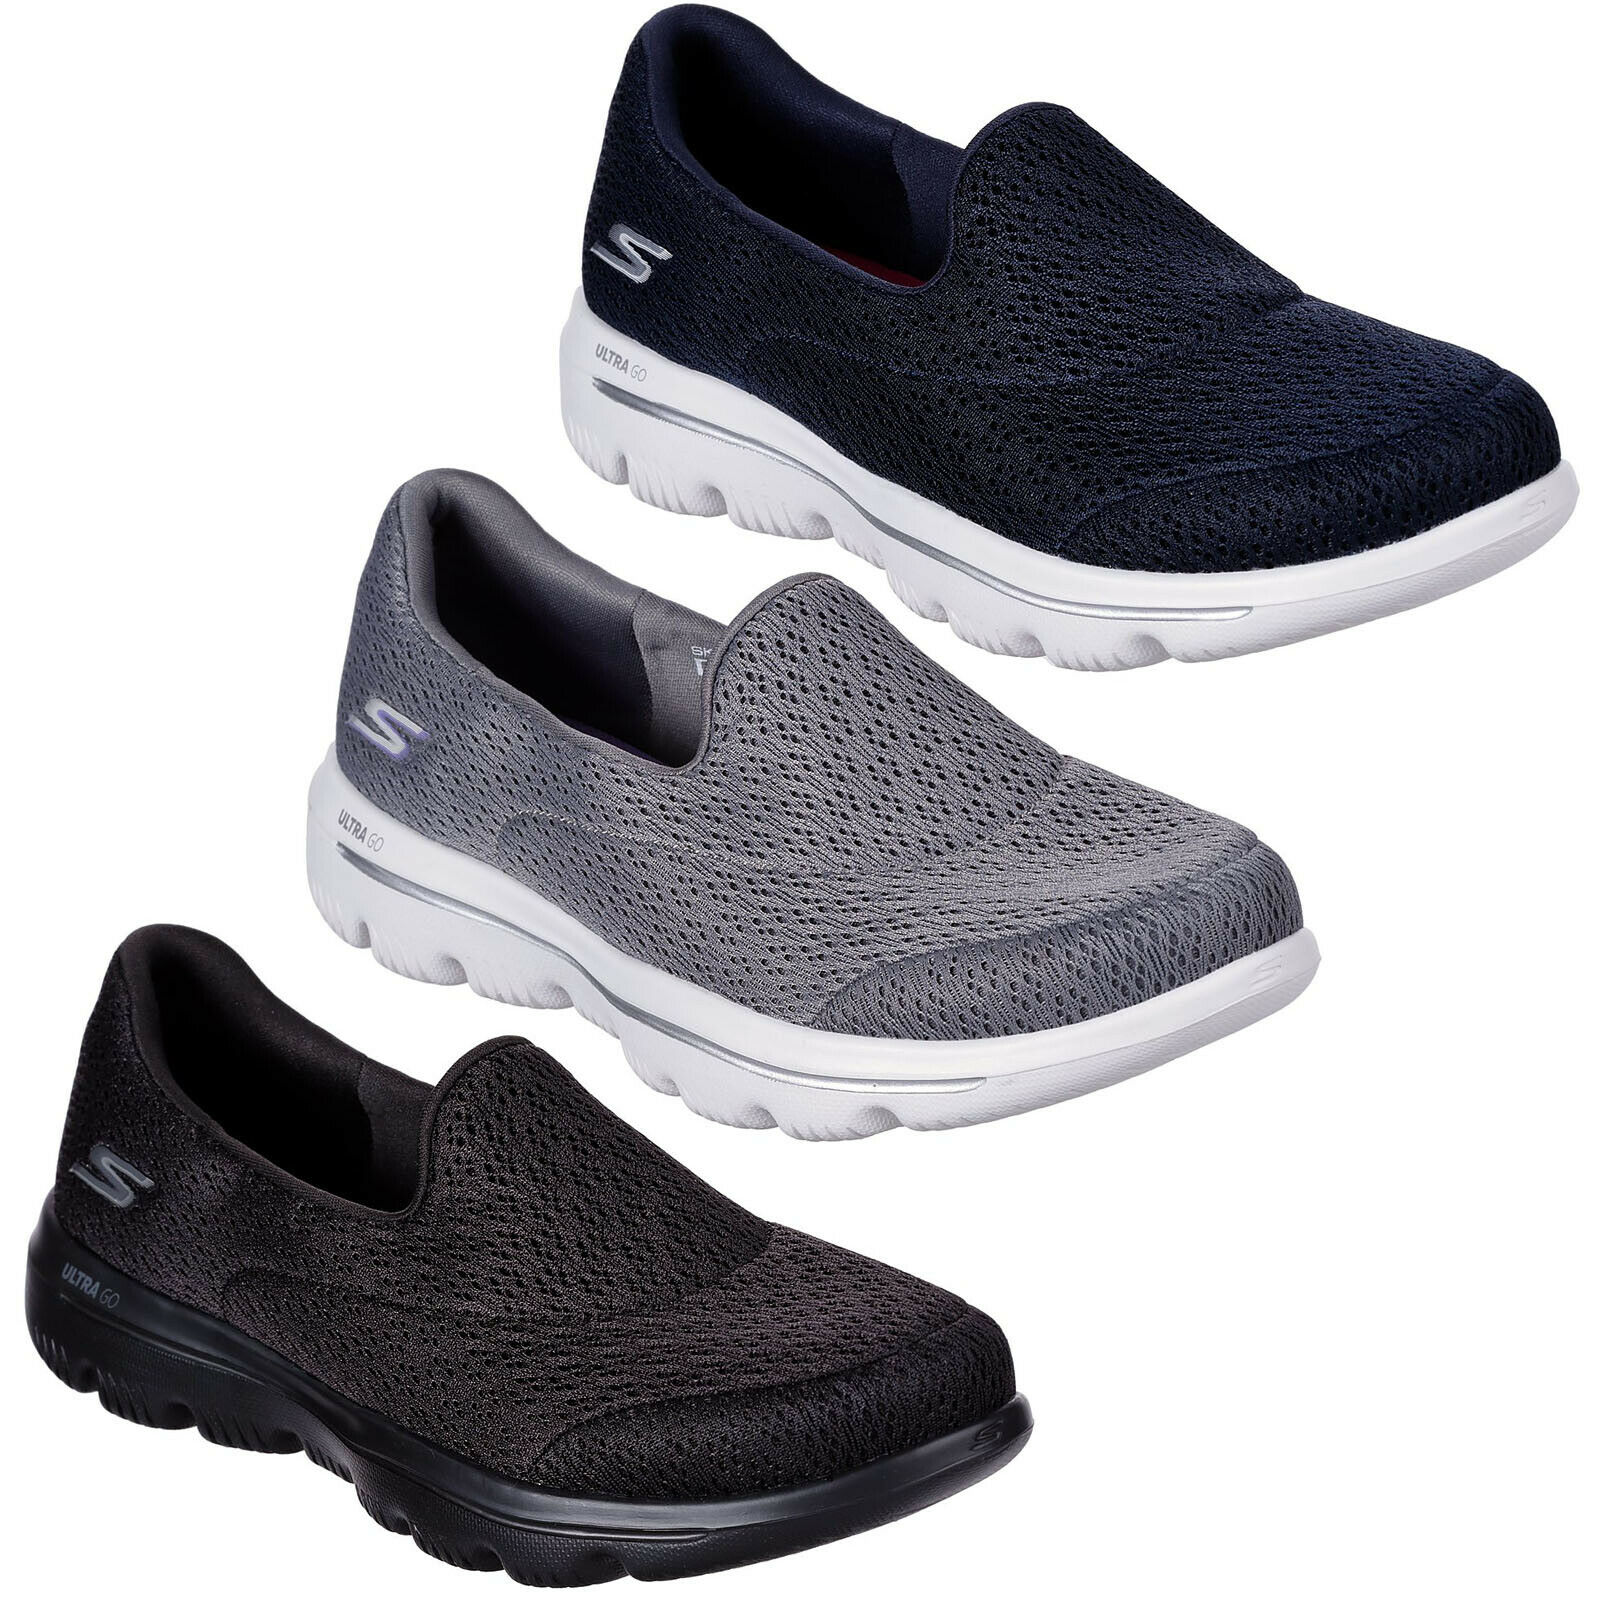 a6082d9fd5d65 Details about Skechers GoWalk Evolution Ultra - Persist Trainers Womens  Lightweight Shoe 15738